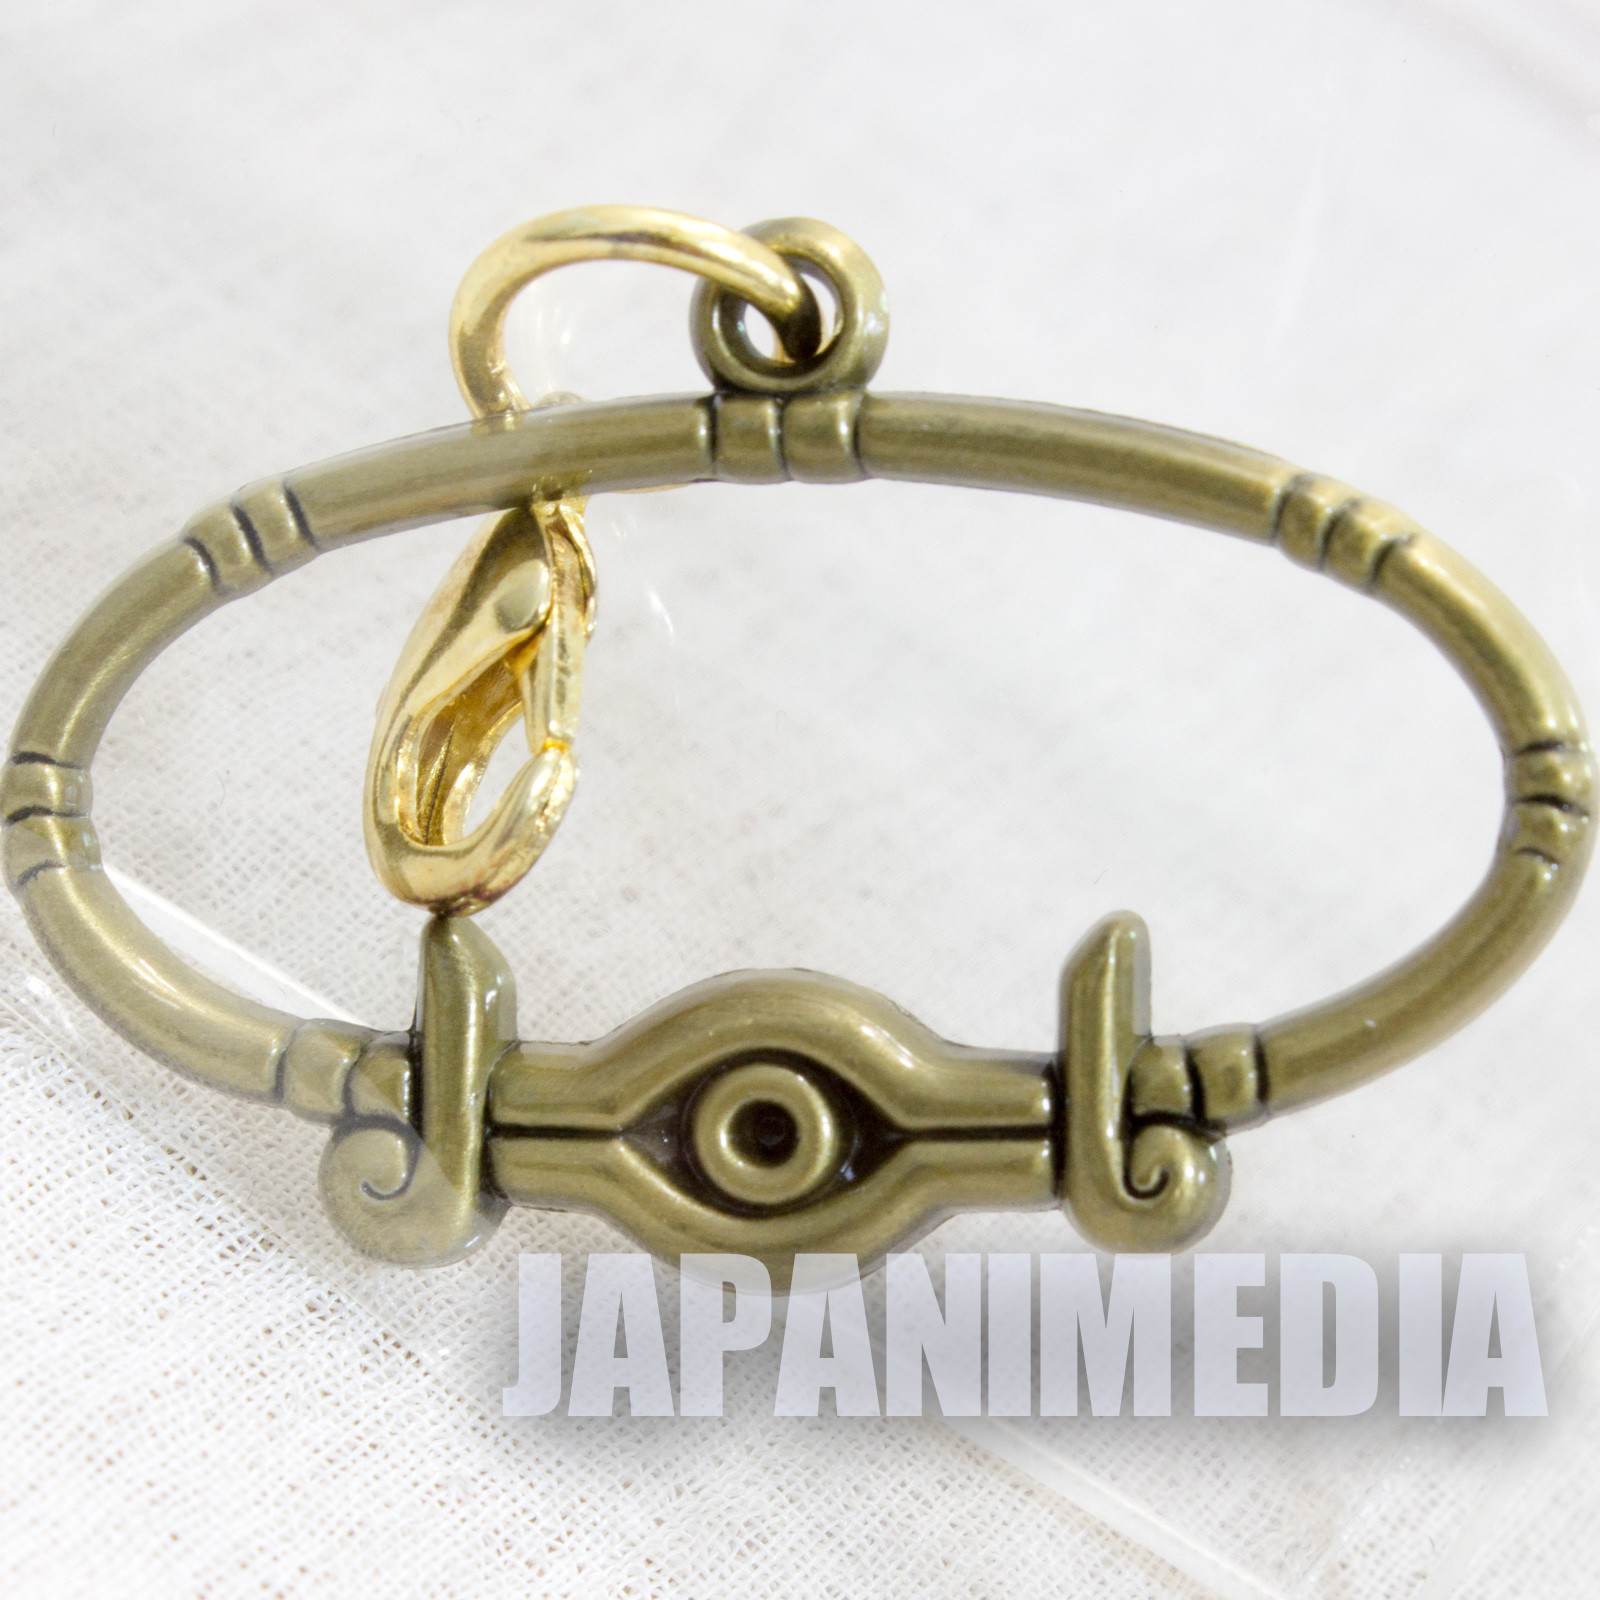 Yu-Gi-Oh! Millenium Necklace 20th Millenium item Metal charm collection [7] JAPAN ANIME